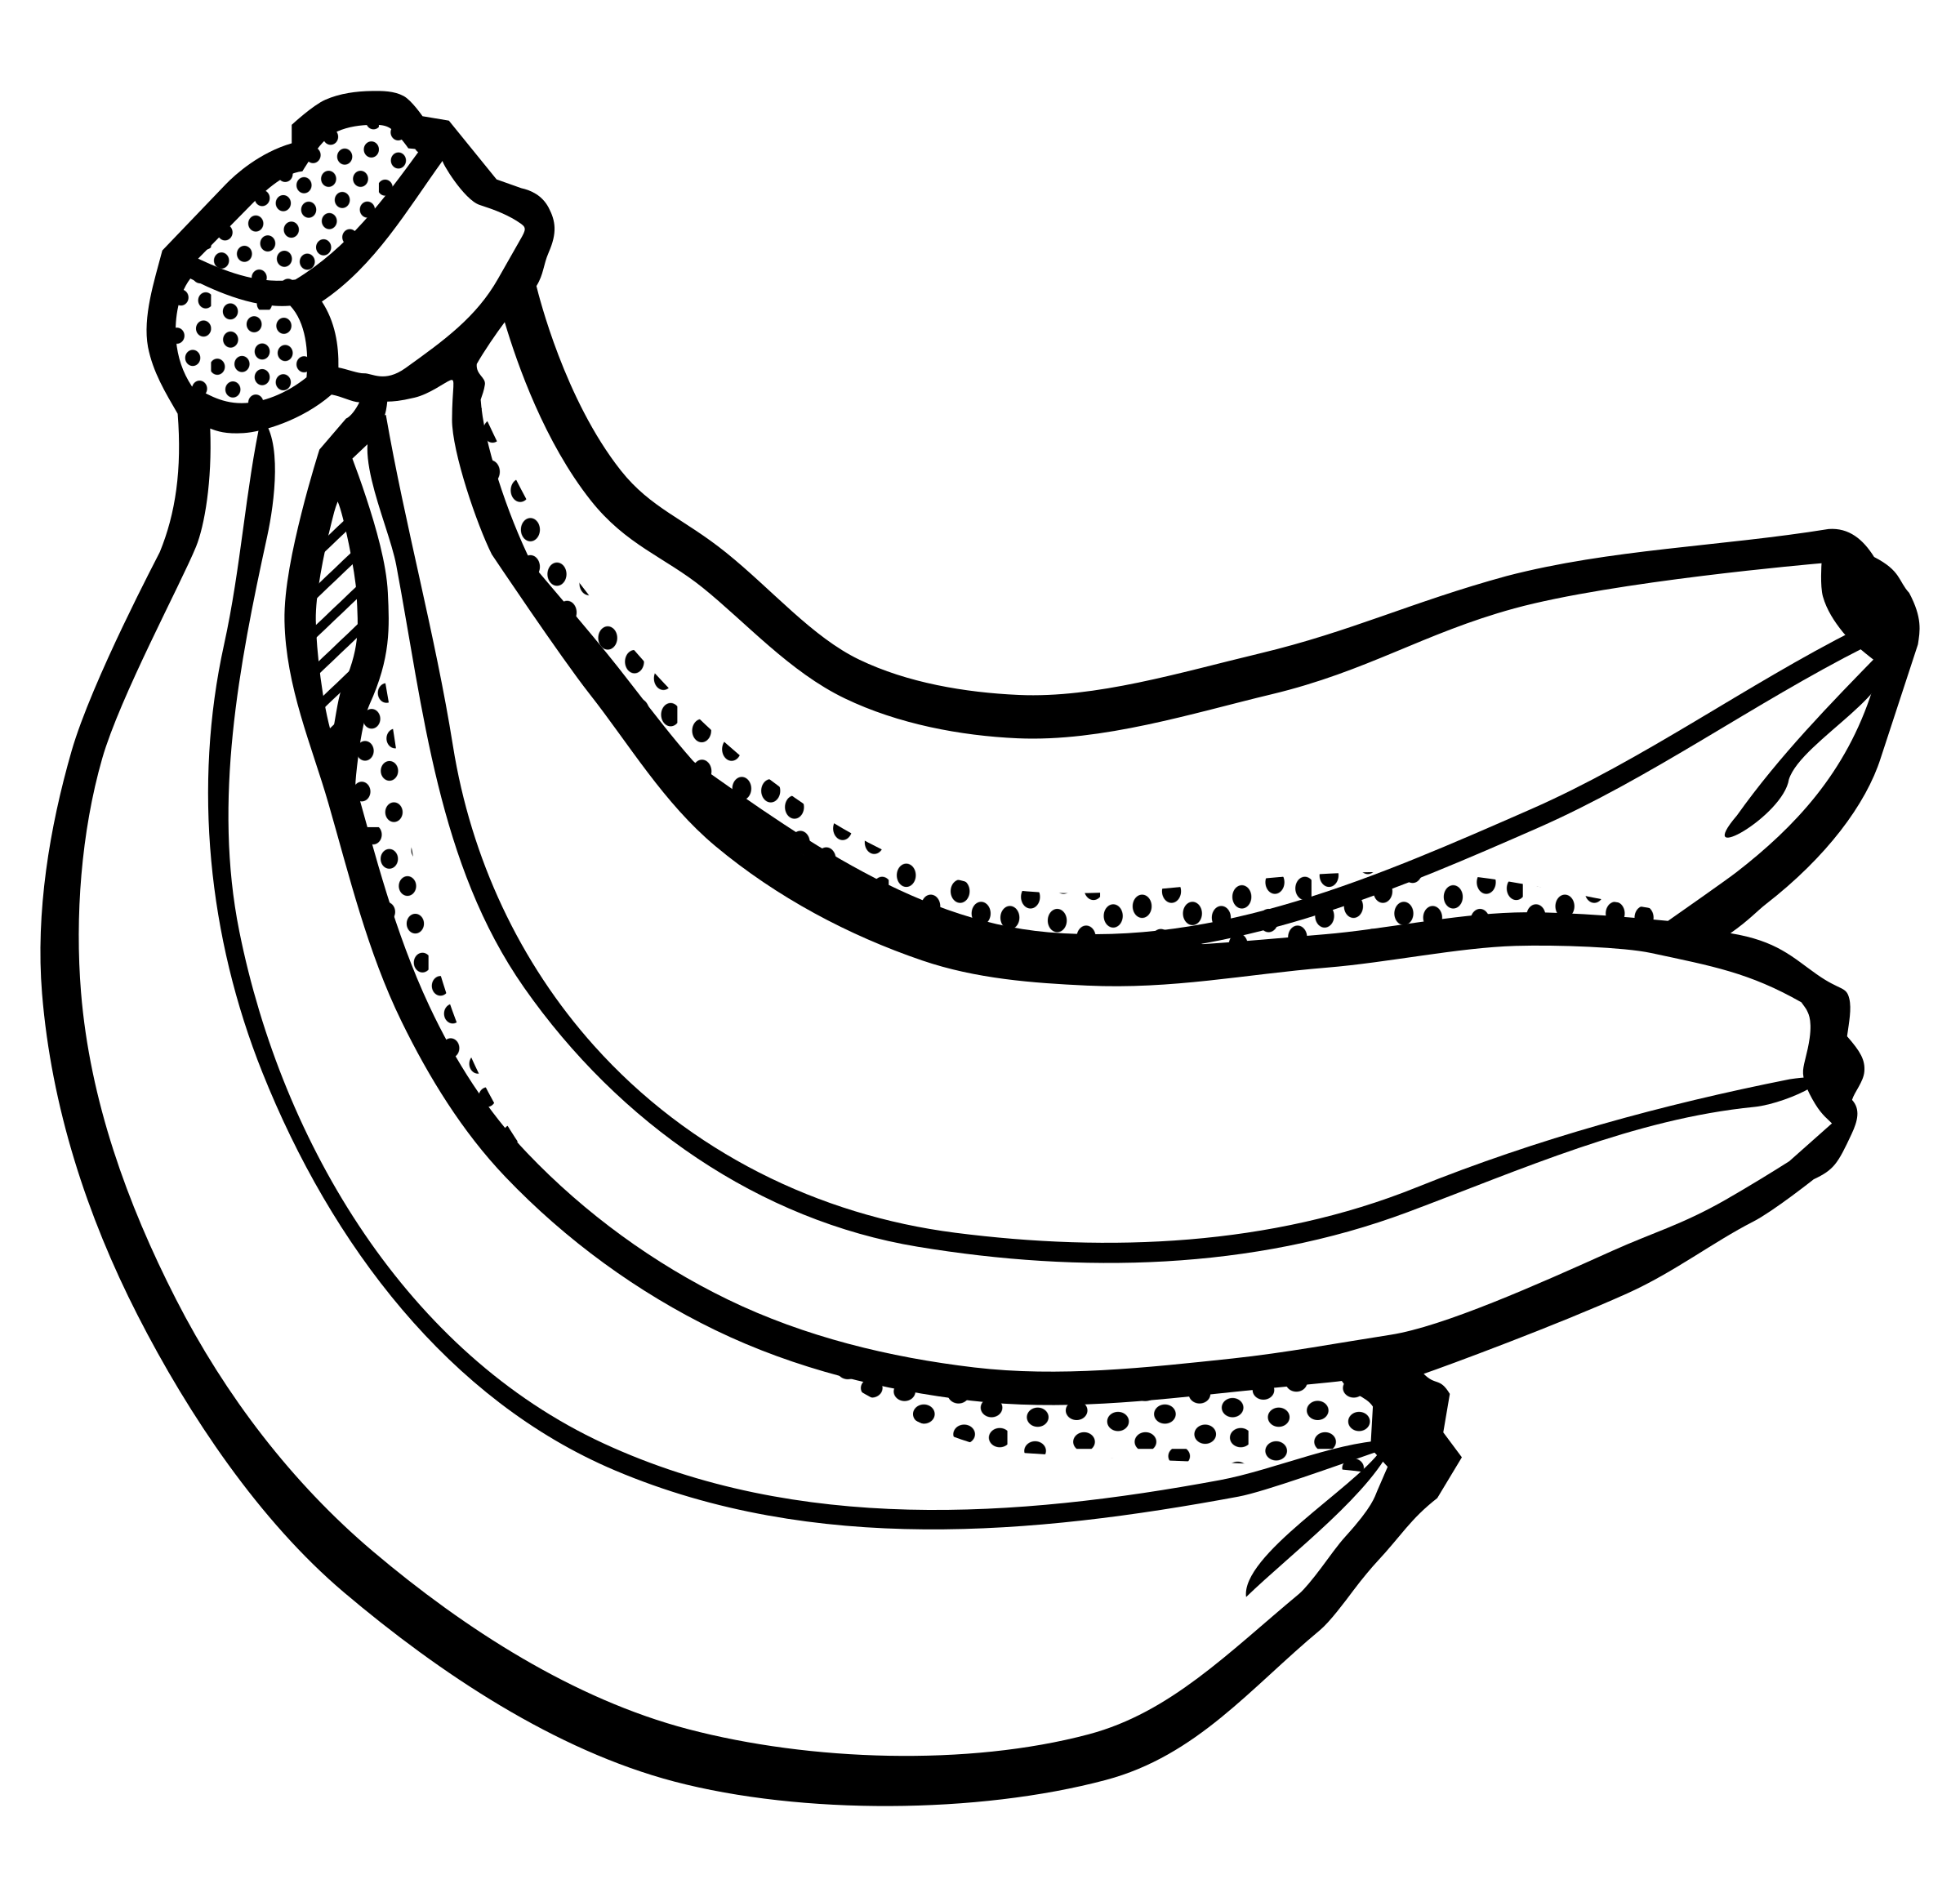 2400x2323 Pictures Banana Drawing Outline,